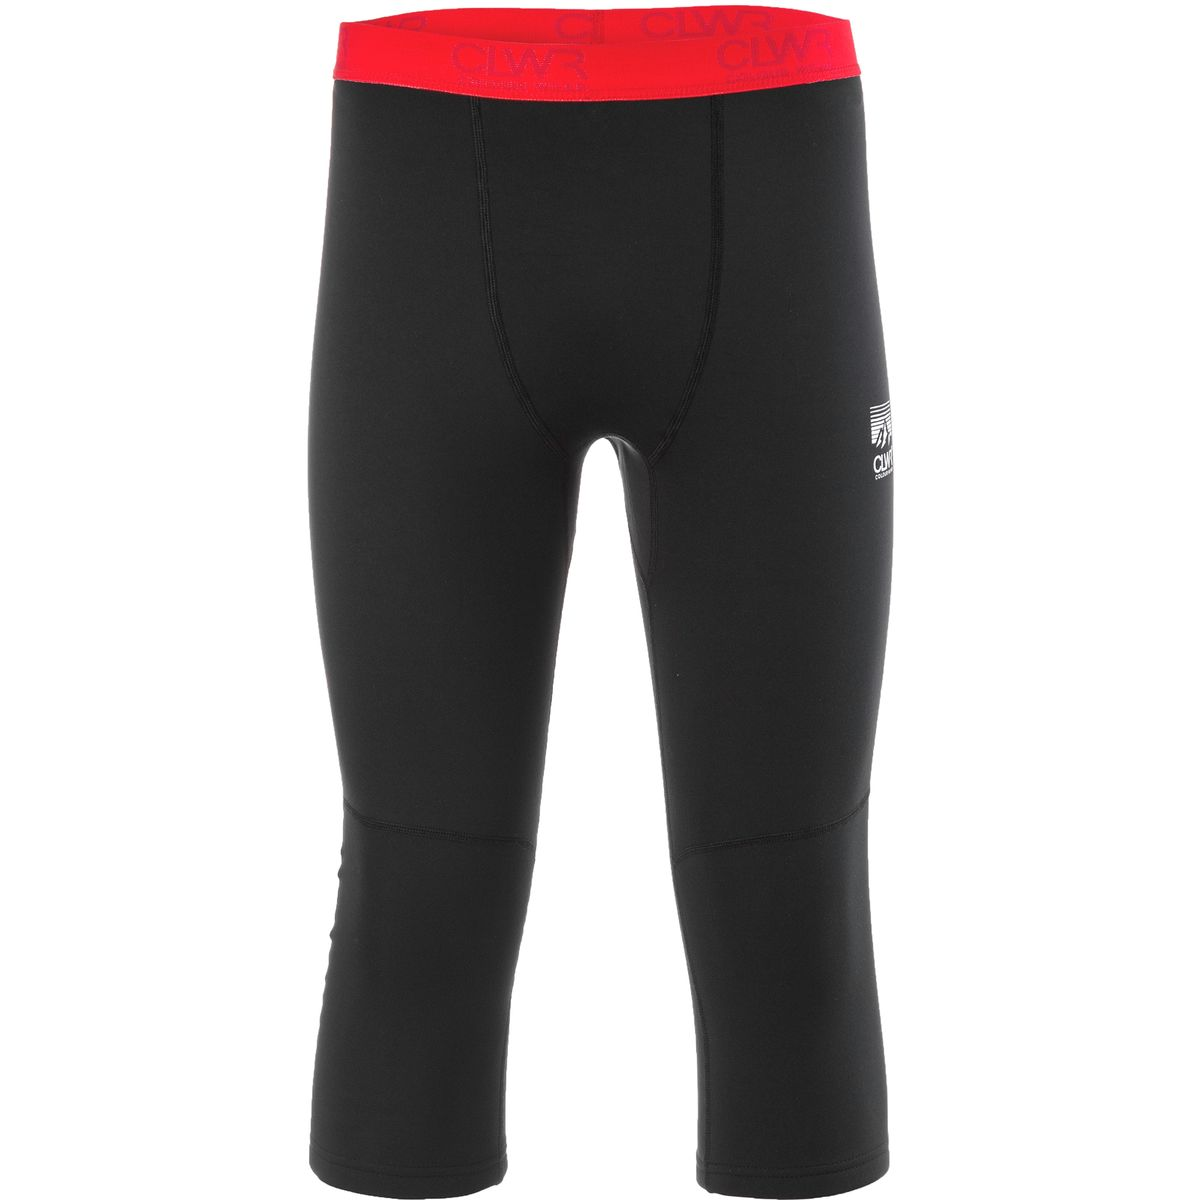 CLWR Power Stretch 3/4 Pant - Men